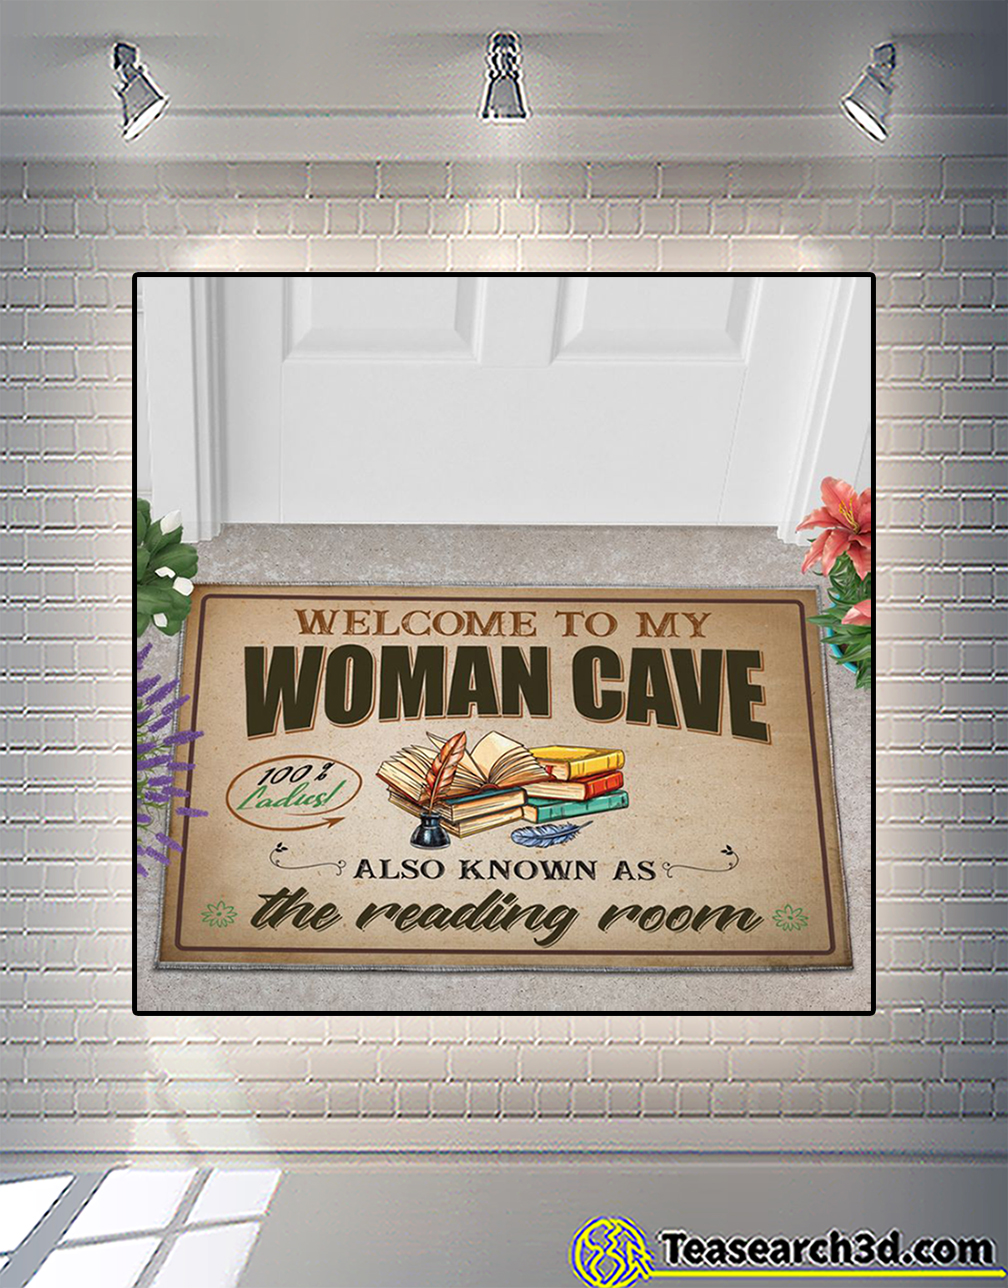 Welcome to my woman cave also know as the reading room doormat